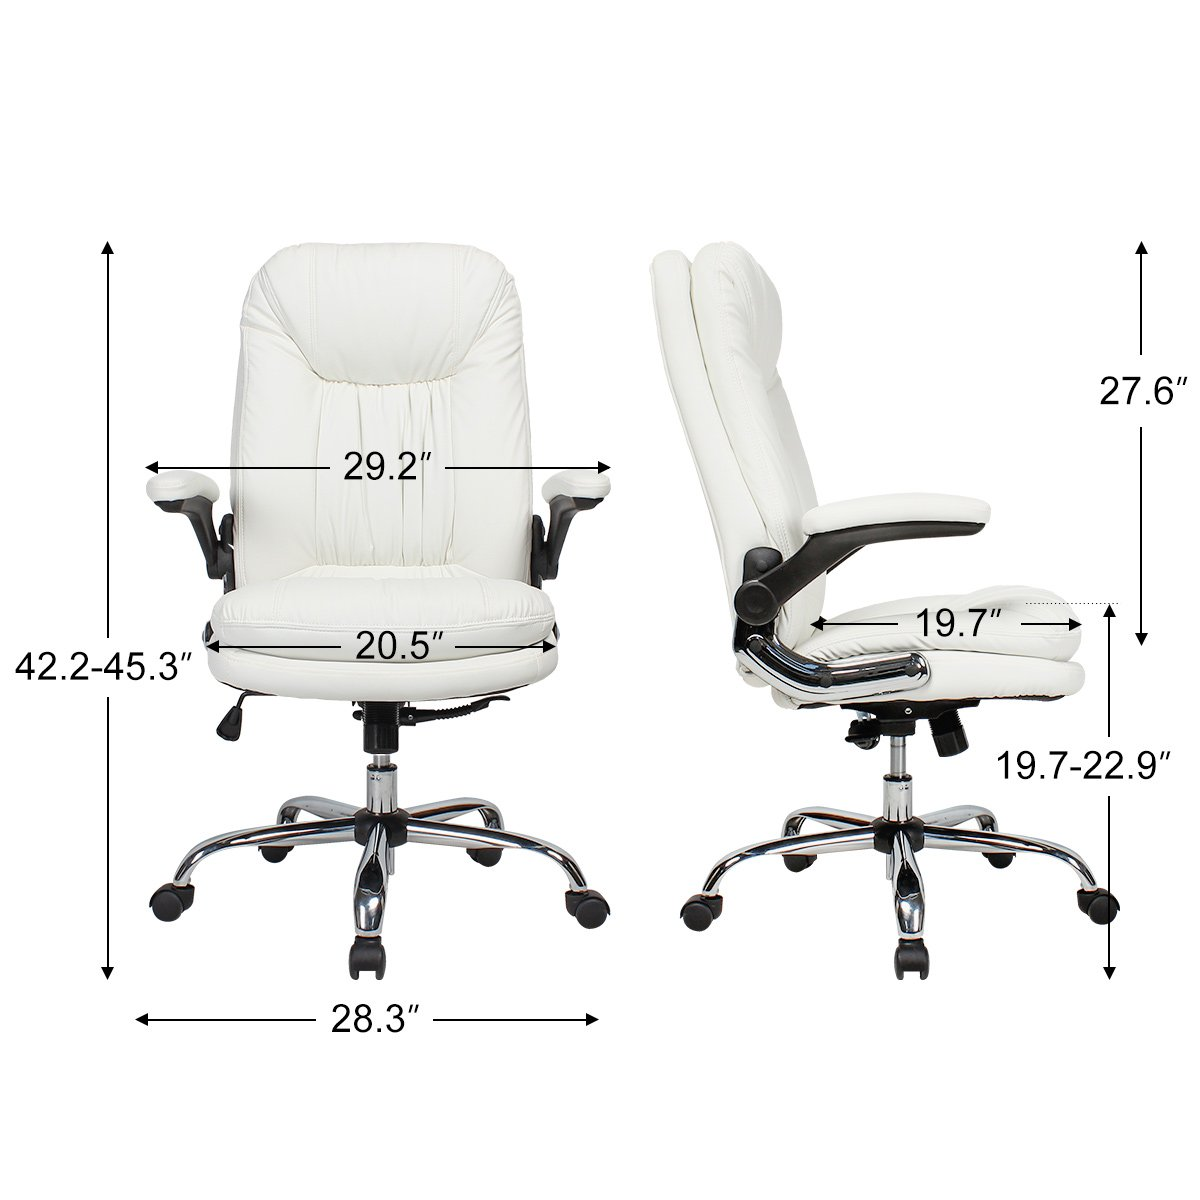 YAMASORO Ergonomic Office Chair with Flip-Up Arms and Comfy Headrest PU Leather High-Back Computer Desk Chair Big and Tall Capacity 330lbs White by YAMASORO (Image #6)